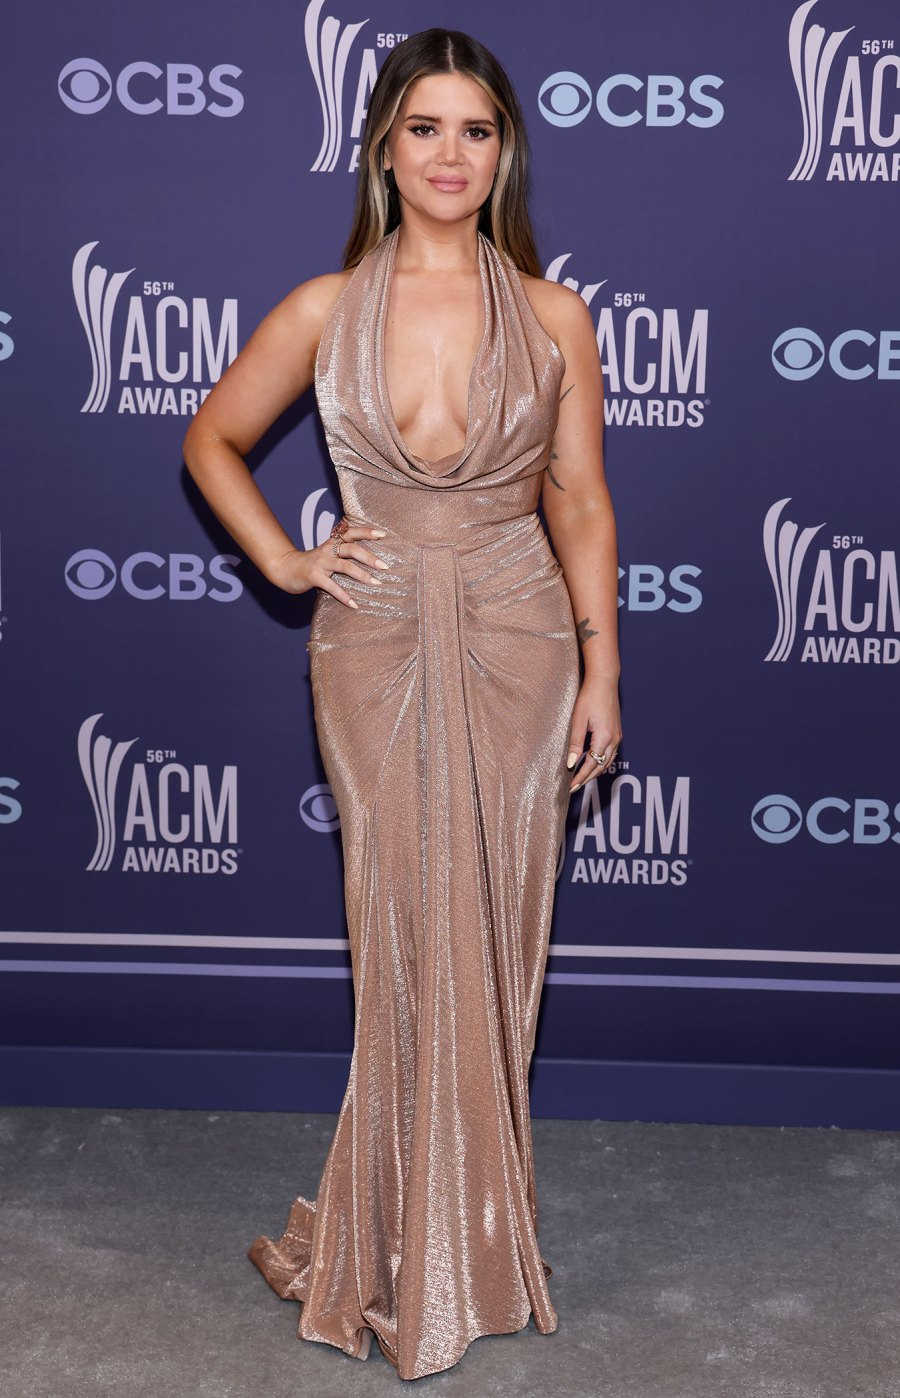 Academy of Country Music Awards Red Carpet Arrivals - Maren Morris